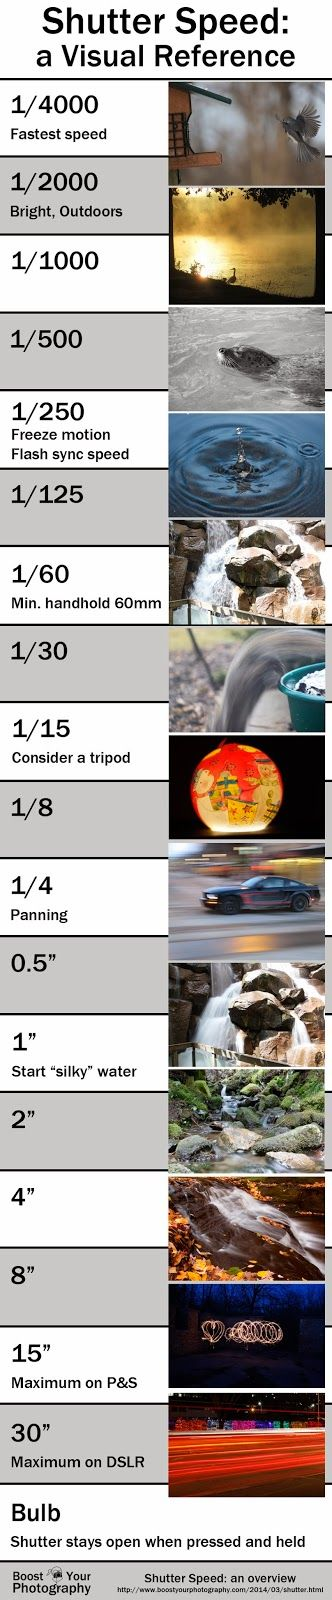 Shutter Speed: an overview | Photography | Pinterest | Photography, Shutter speed and Photography 101